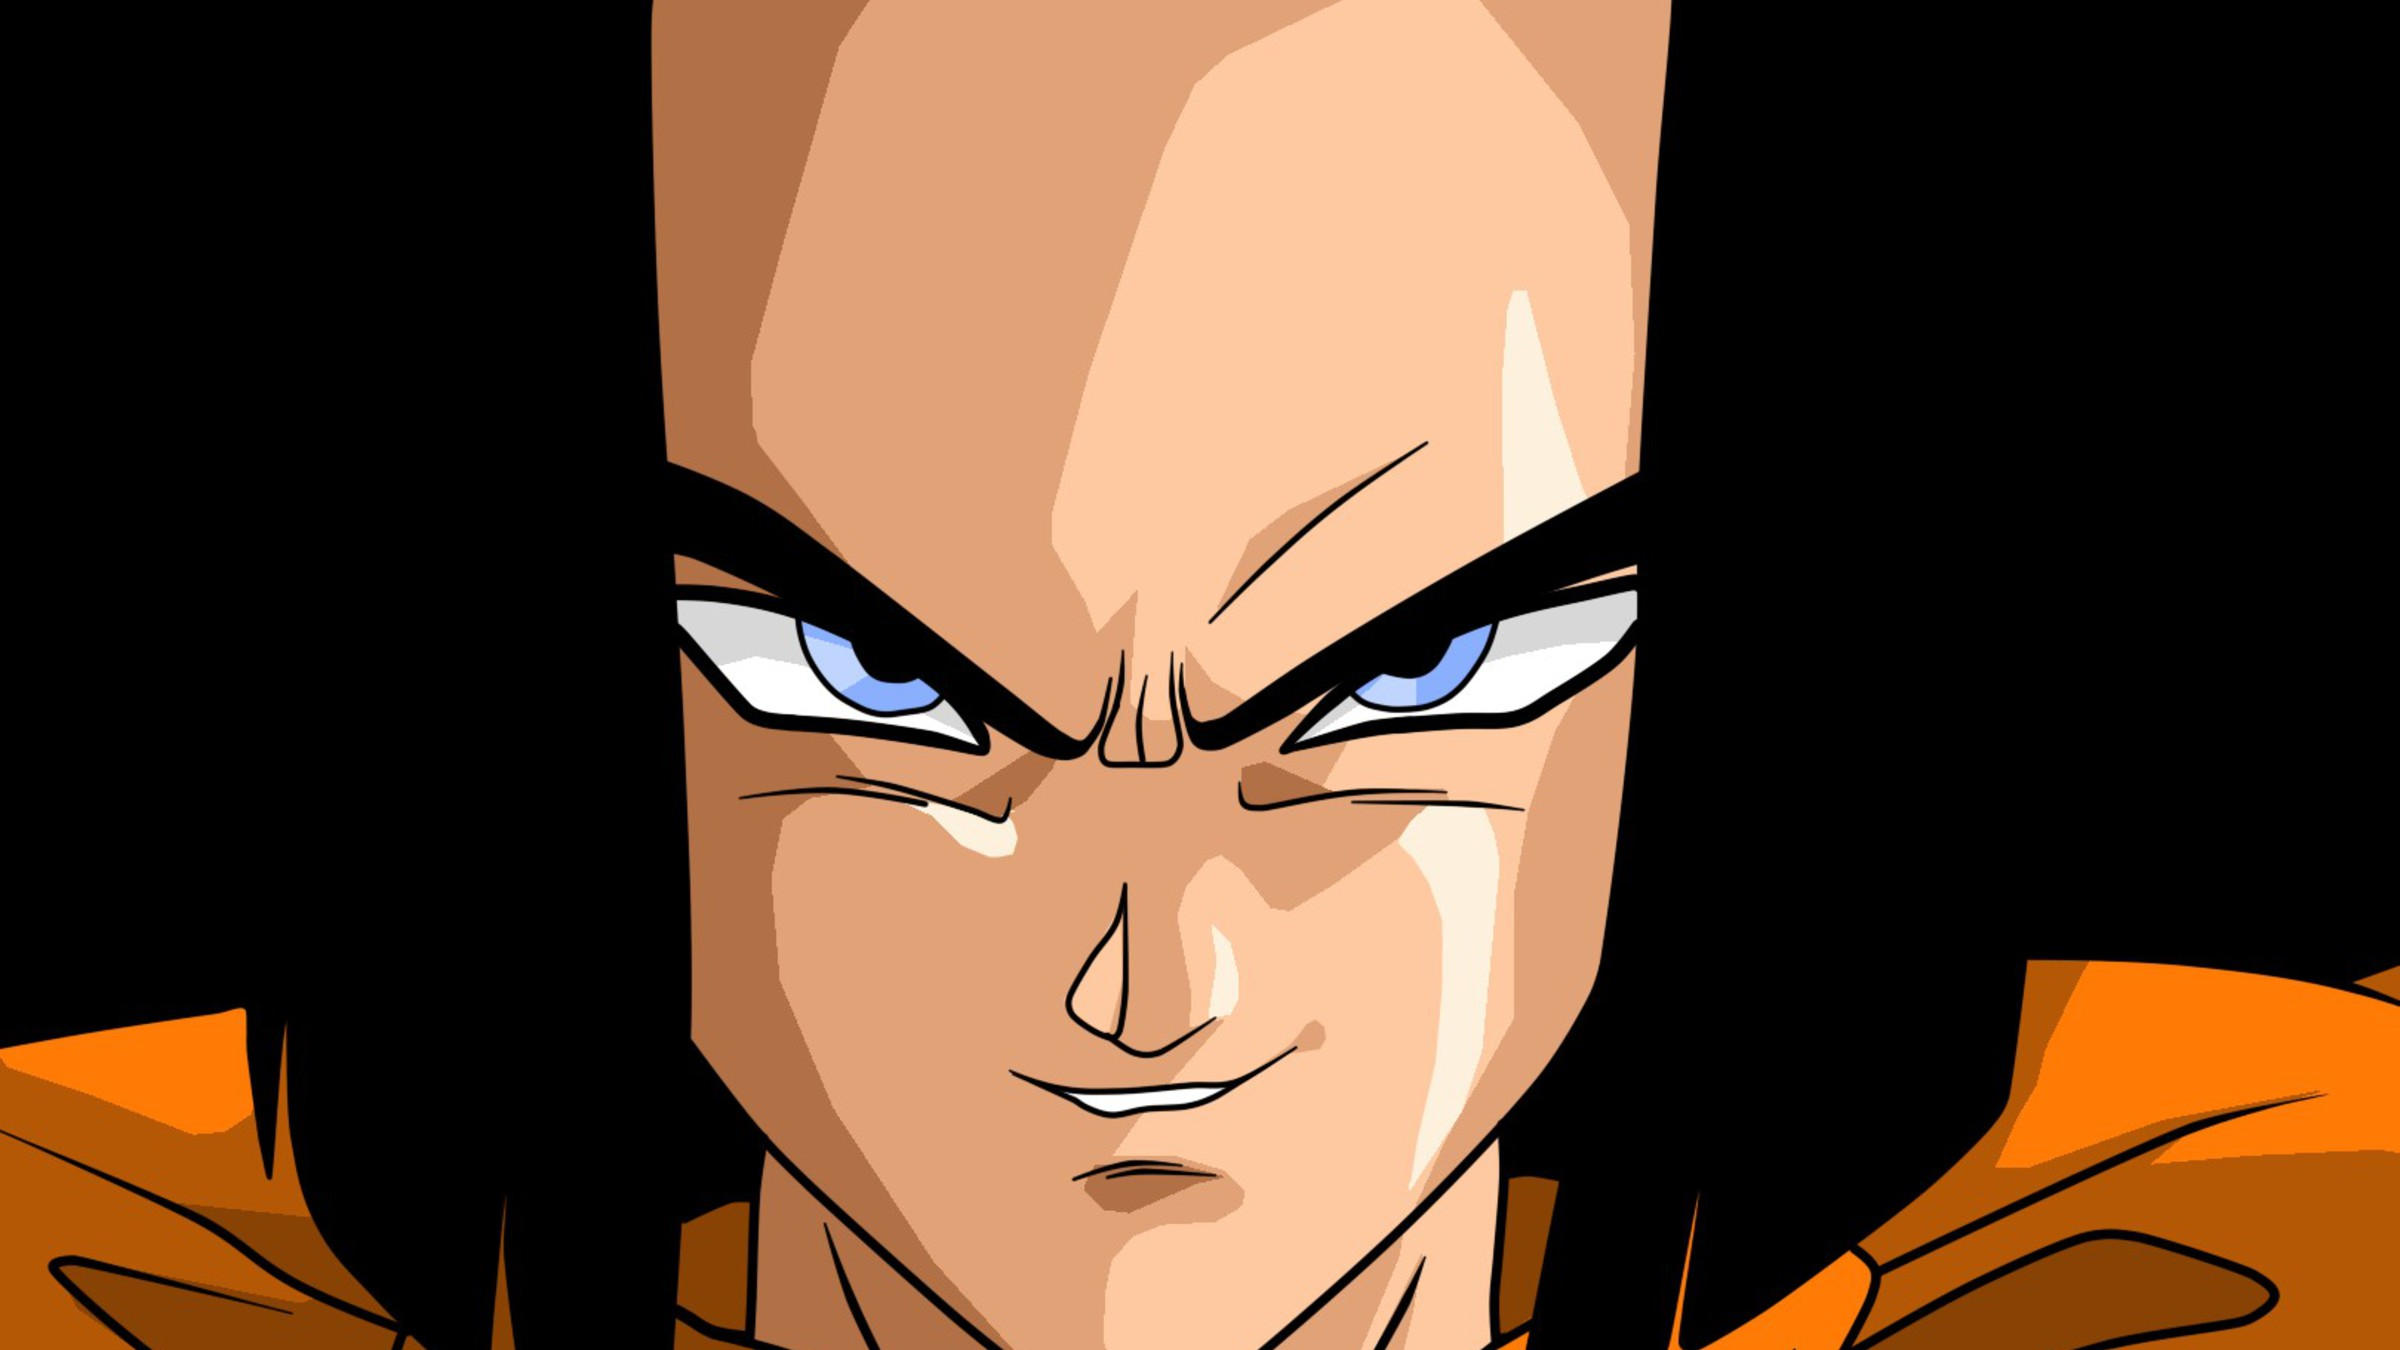 Dragon Ball Z Hd Wallpaper For Android: Android Dragon Ball Z Gt One Wallpaper